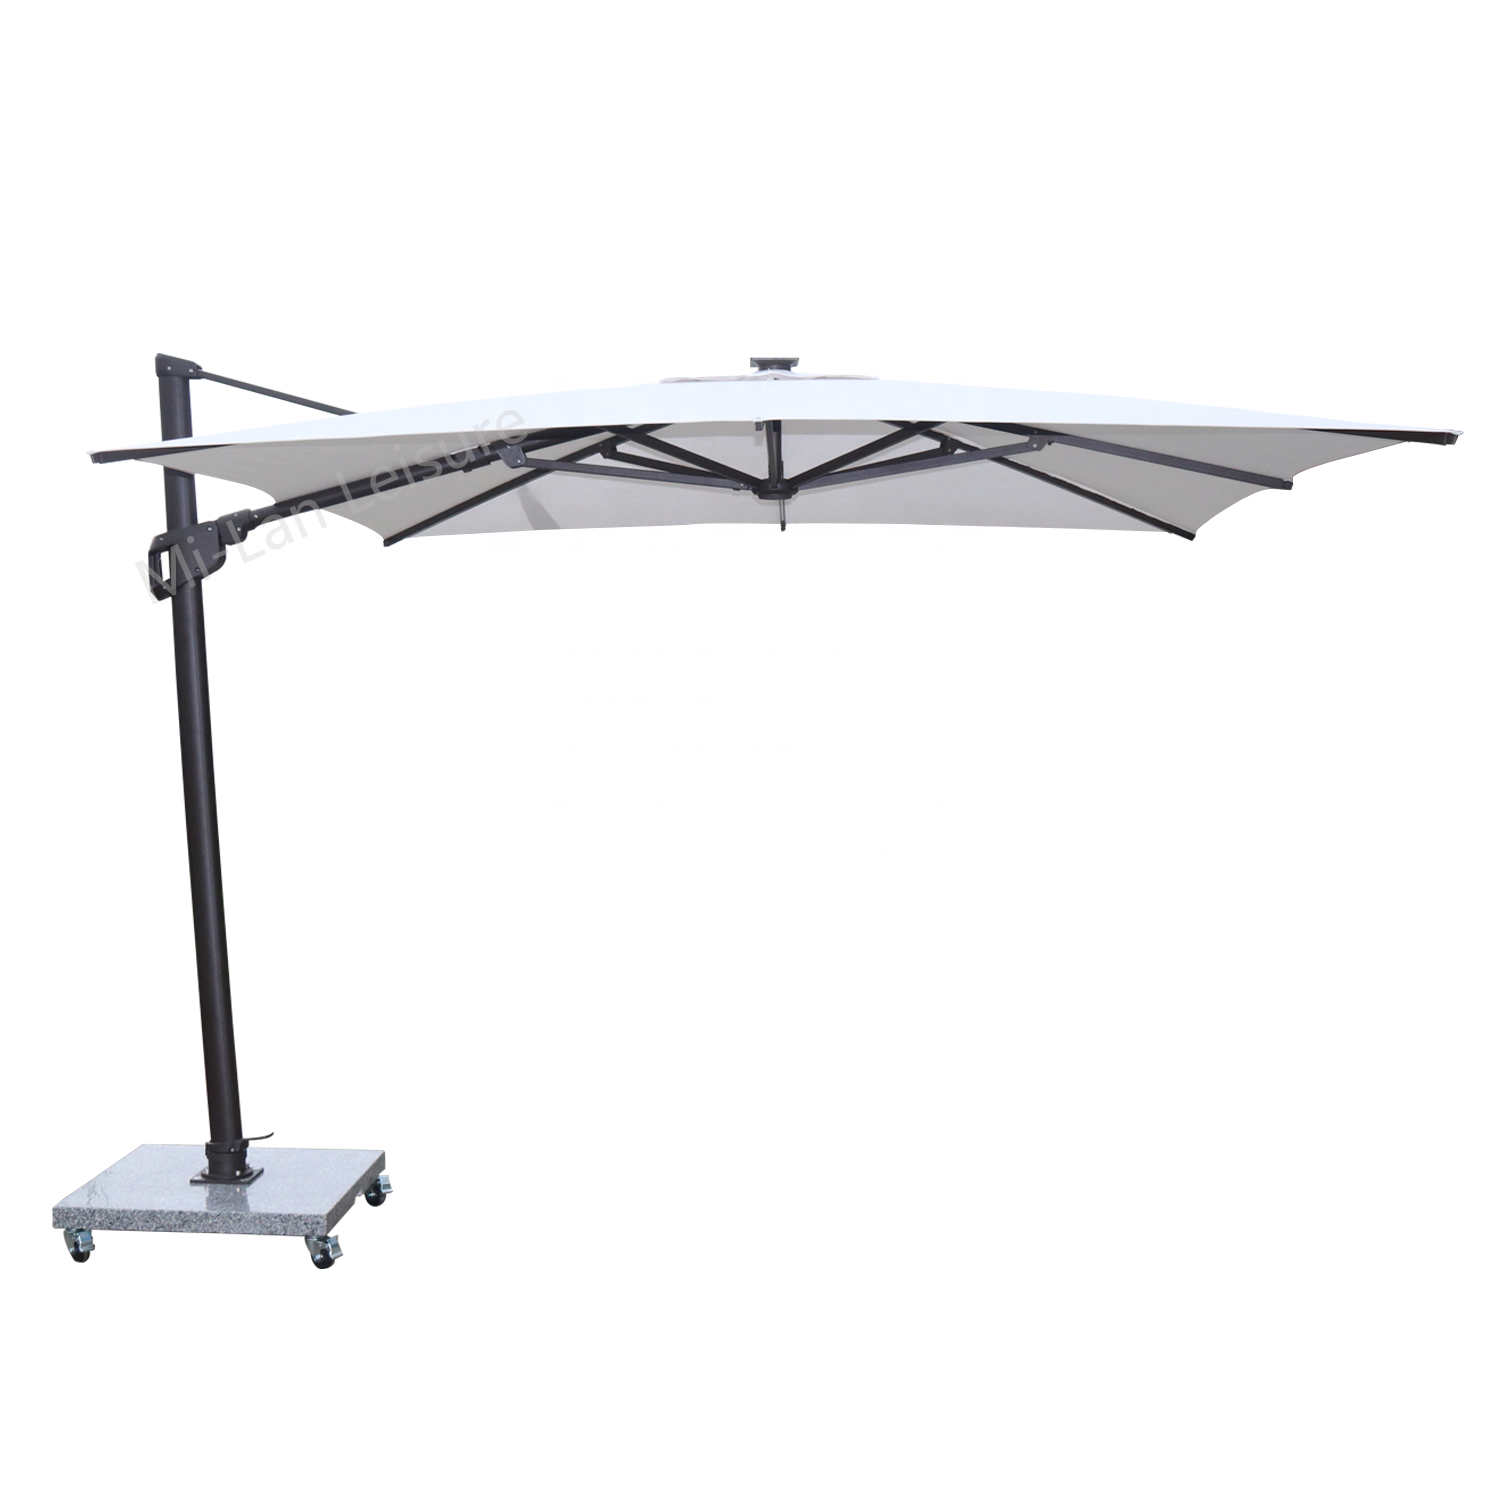 3x3M LED Commercial Hanging Patio Umbrella Parasol Cover Waterproof Aluminium Frame With Cross base LED Offset Umbrella